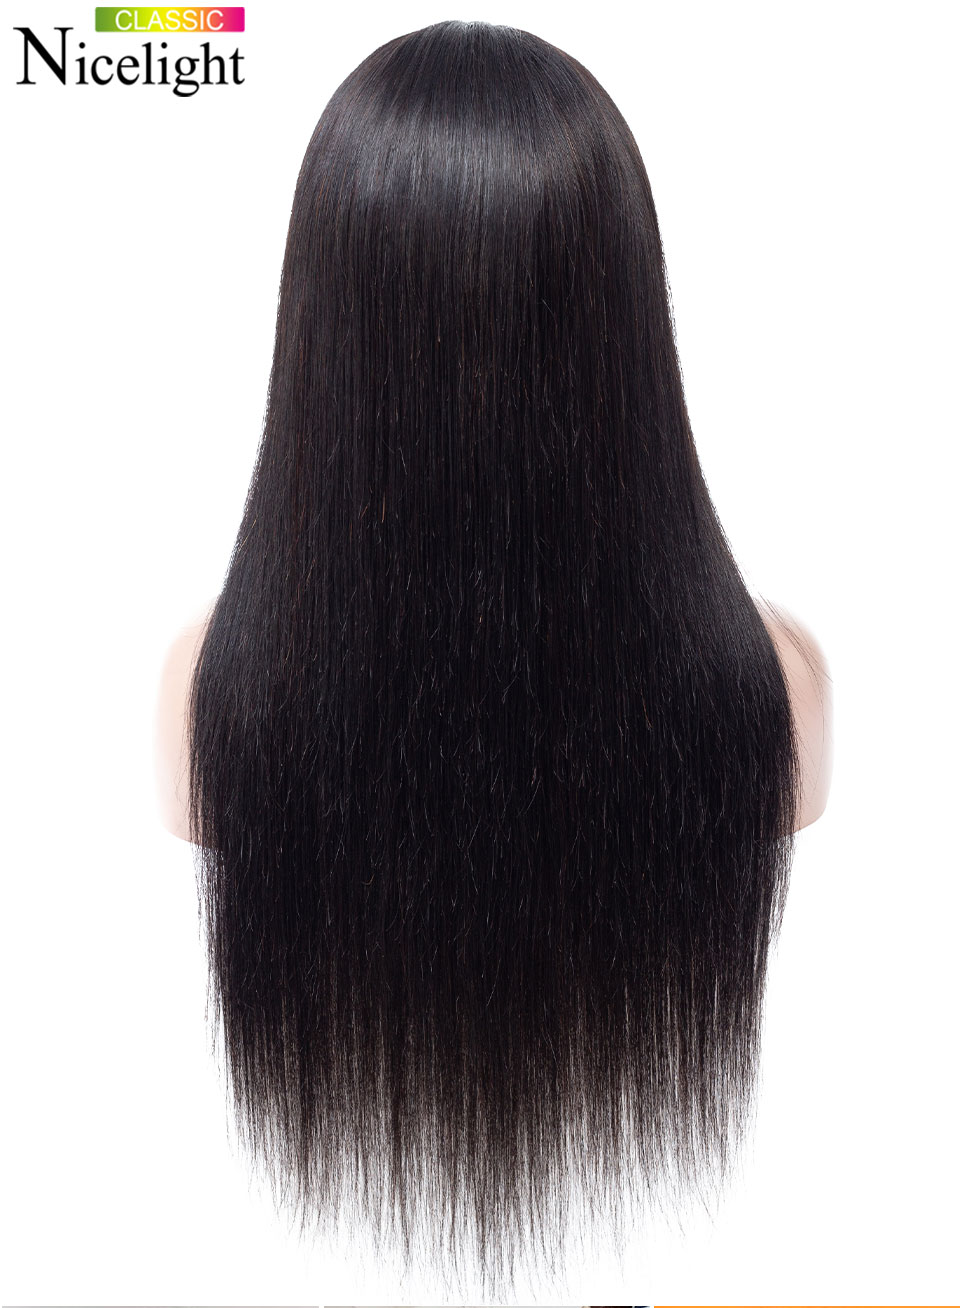 H39cc4ad1f17a4bae9eedcdb834677a6fe Straight Closure Wig Human Hair Wigs With Closure 4X4 Lace Wig Nicelight Indian Wig Remy Natural Hair Long Black Closure Wig